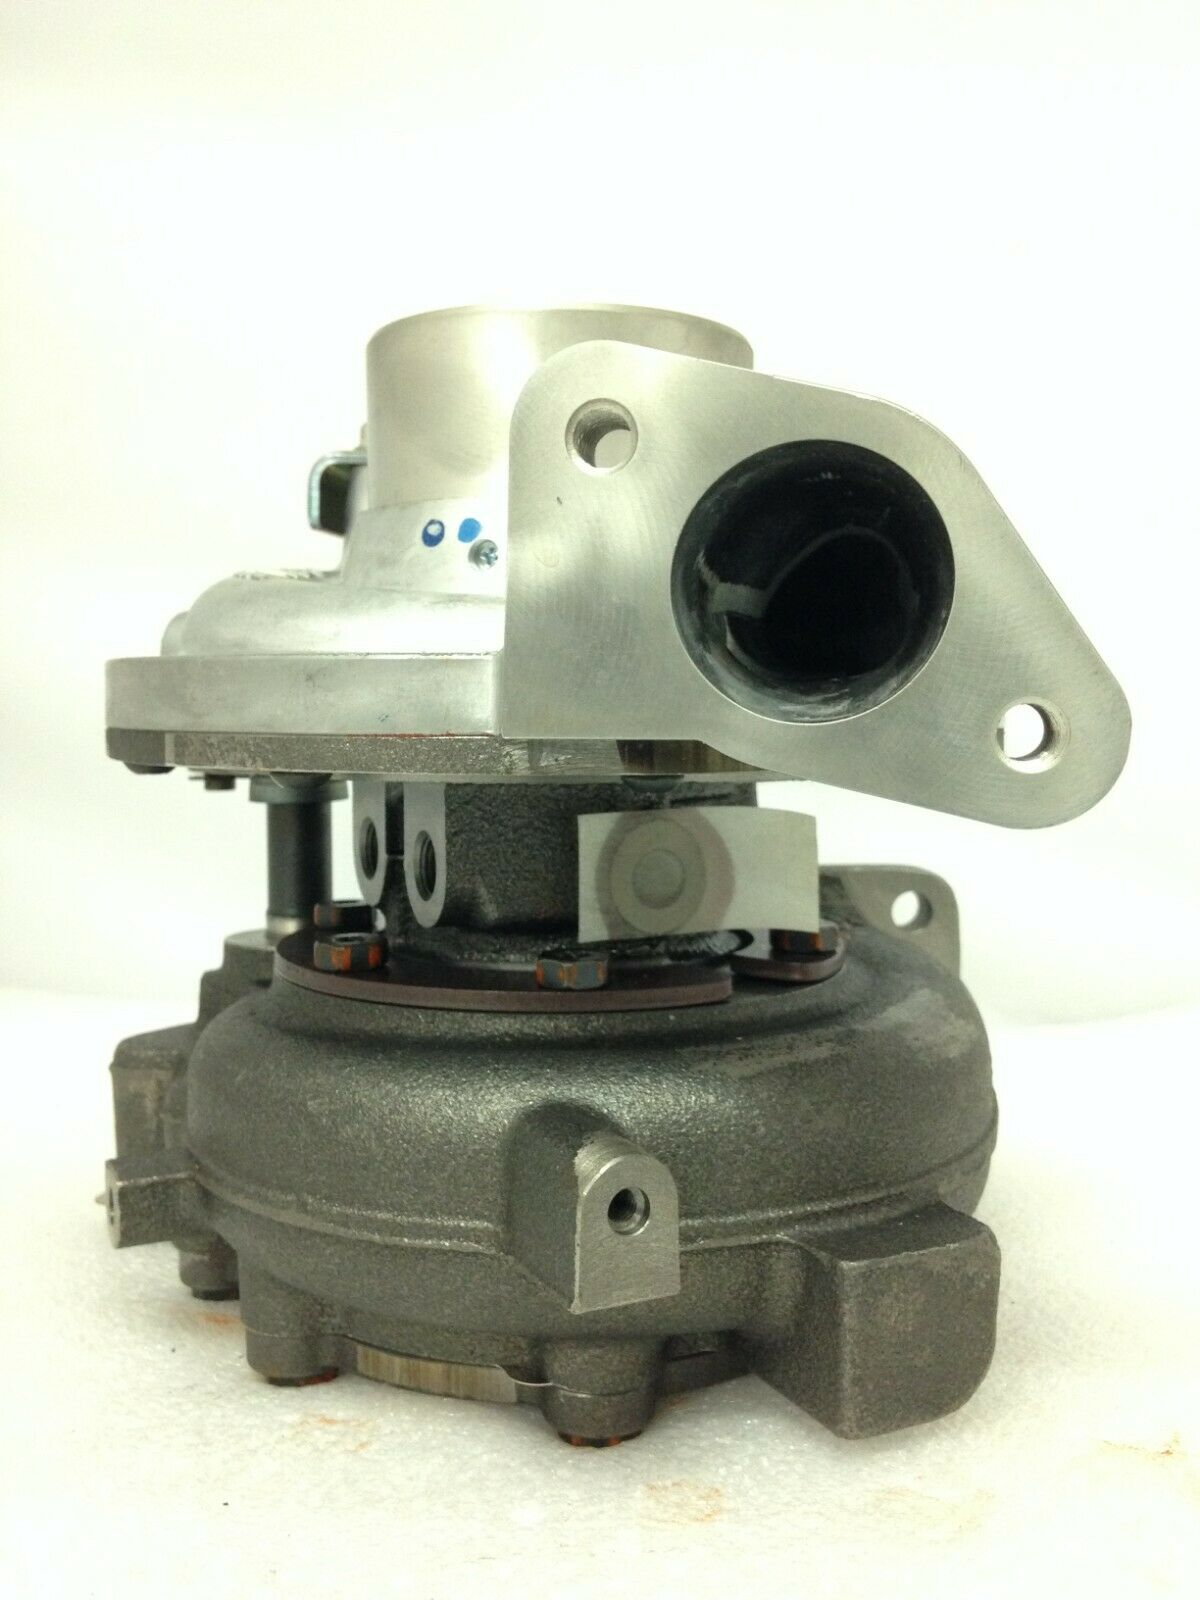 Isuzu NPR IHI RHF55V VIGT turbocharger NEW